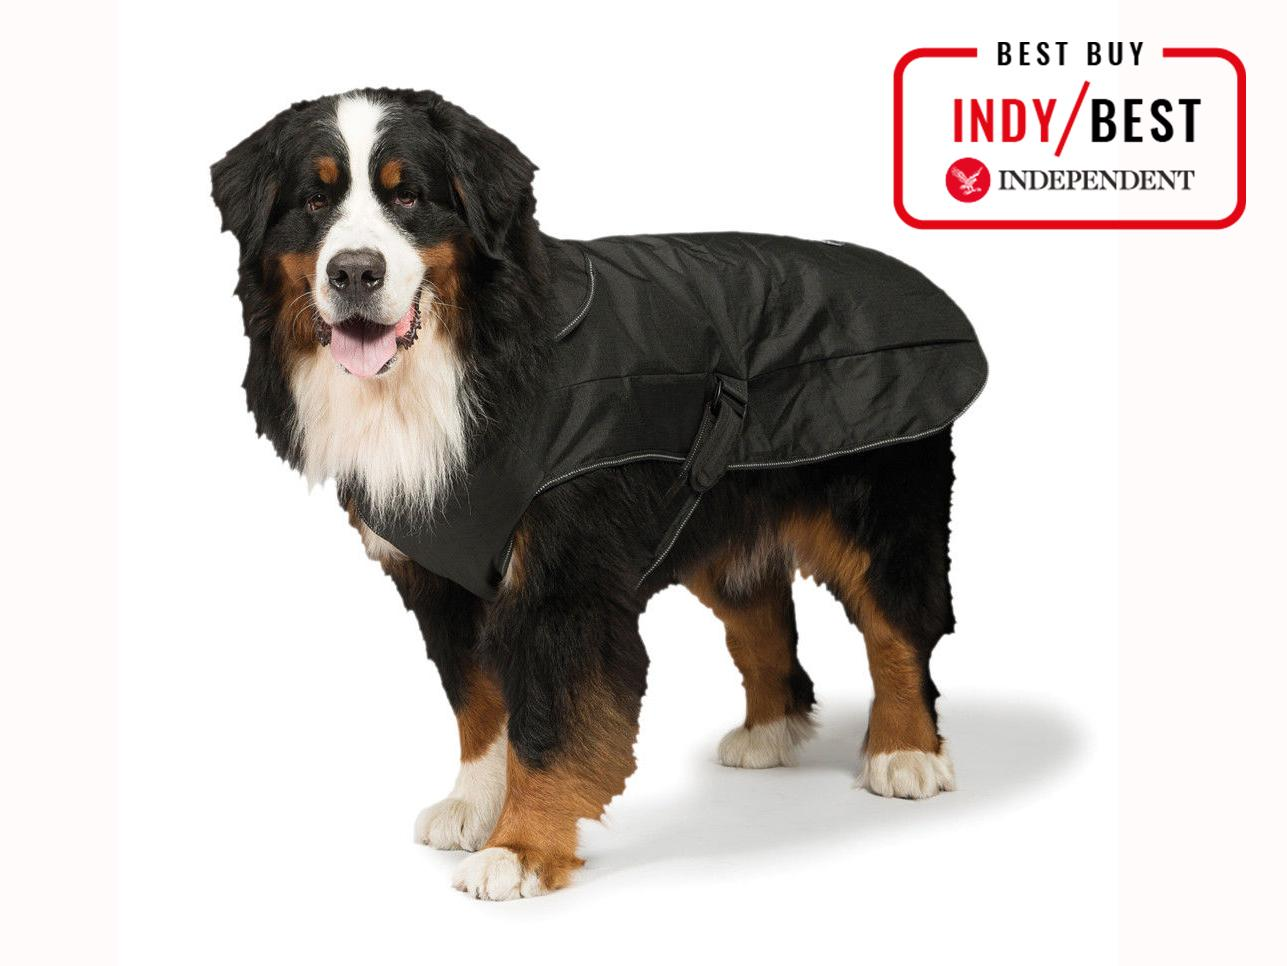 ce756fc0db1 Danish Design 2-in-1 Harness dog coat: £13.95 – £35.95,  Notinthedoghouse.co.uk